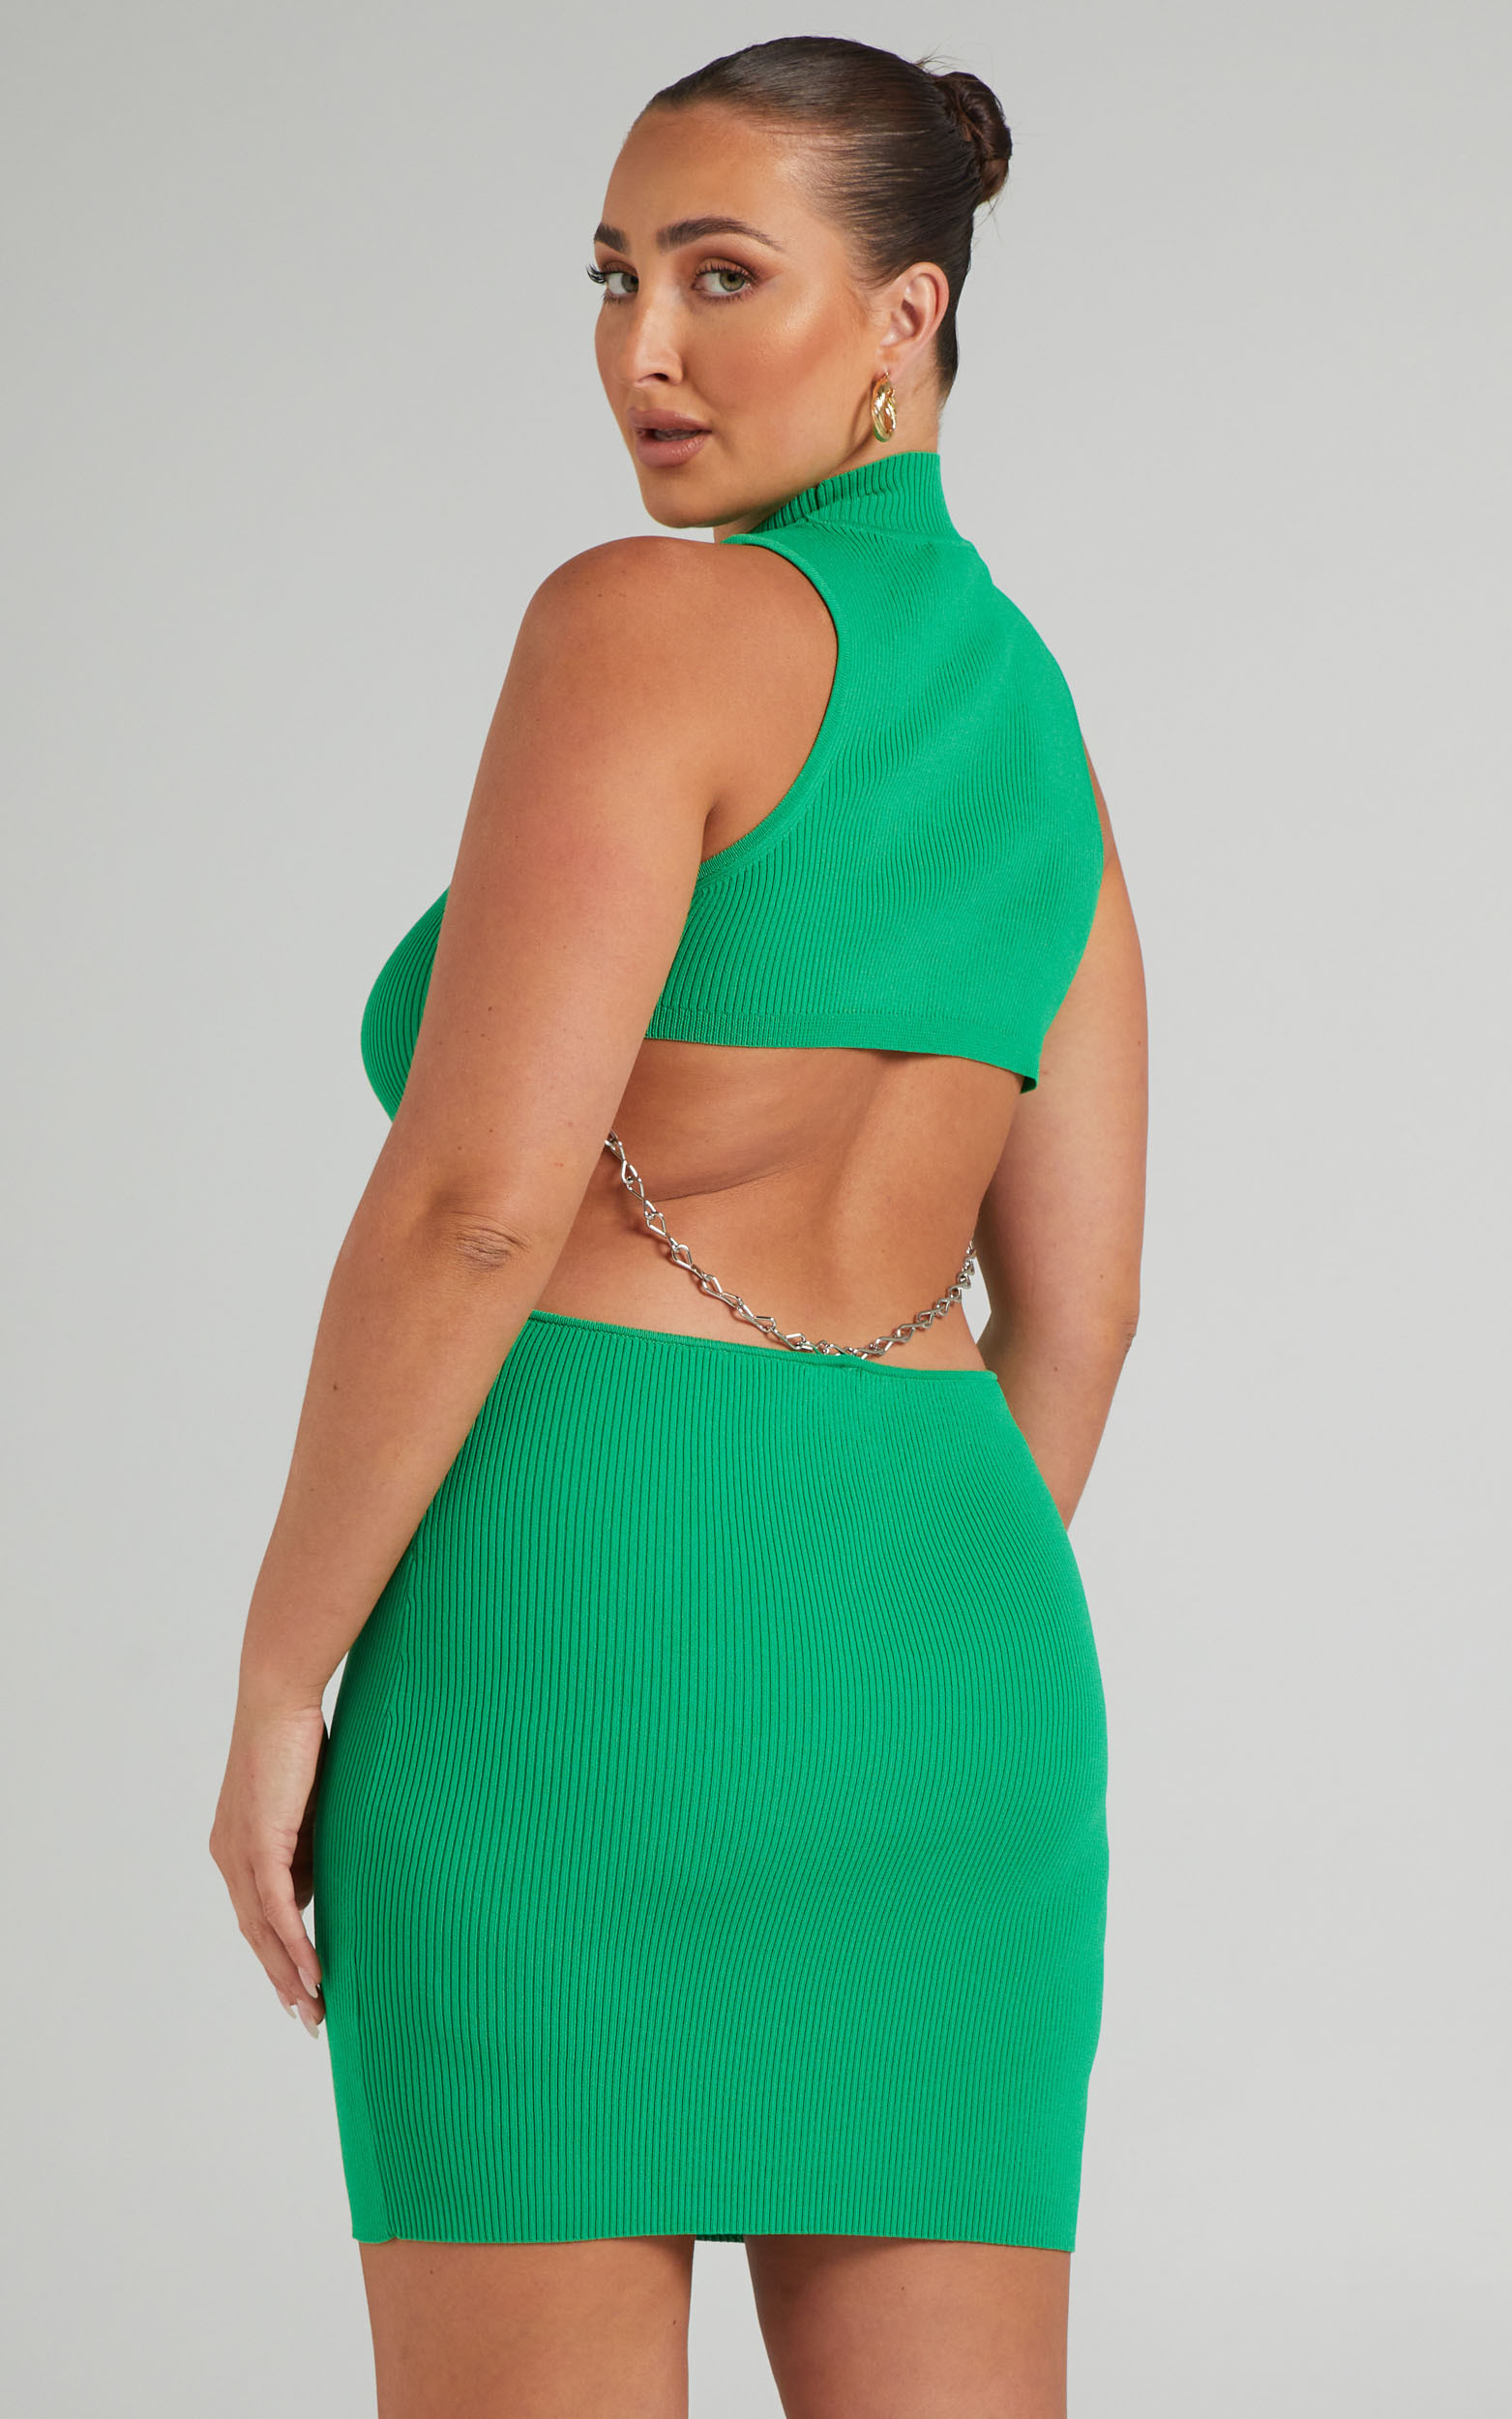 LIONESS - JADORE CHAIN MINI DRESS in Green - L, GRN1, hi-res image number null